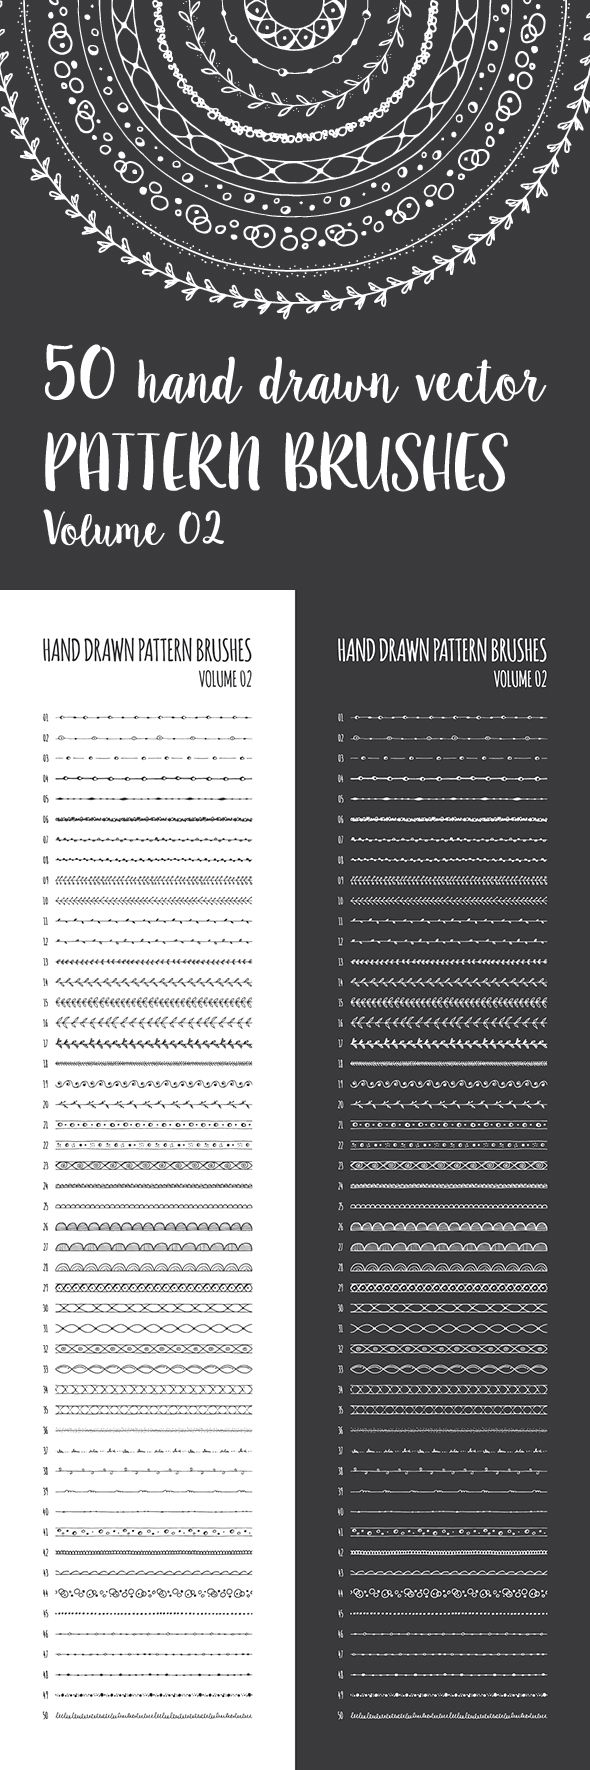 50 Hand Drawn Vector Pattern Brushes — AI Illustrator #hand sketched #boho • Download ➝ https://graphicriver.net/item/50-hand-drawn-vector-pattern-brushes/18936734?ref=pxcr